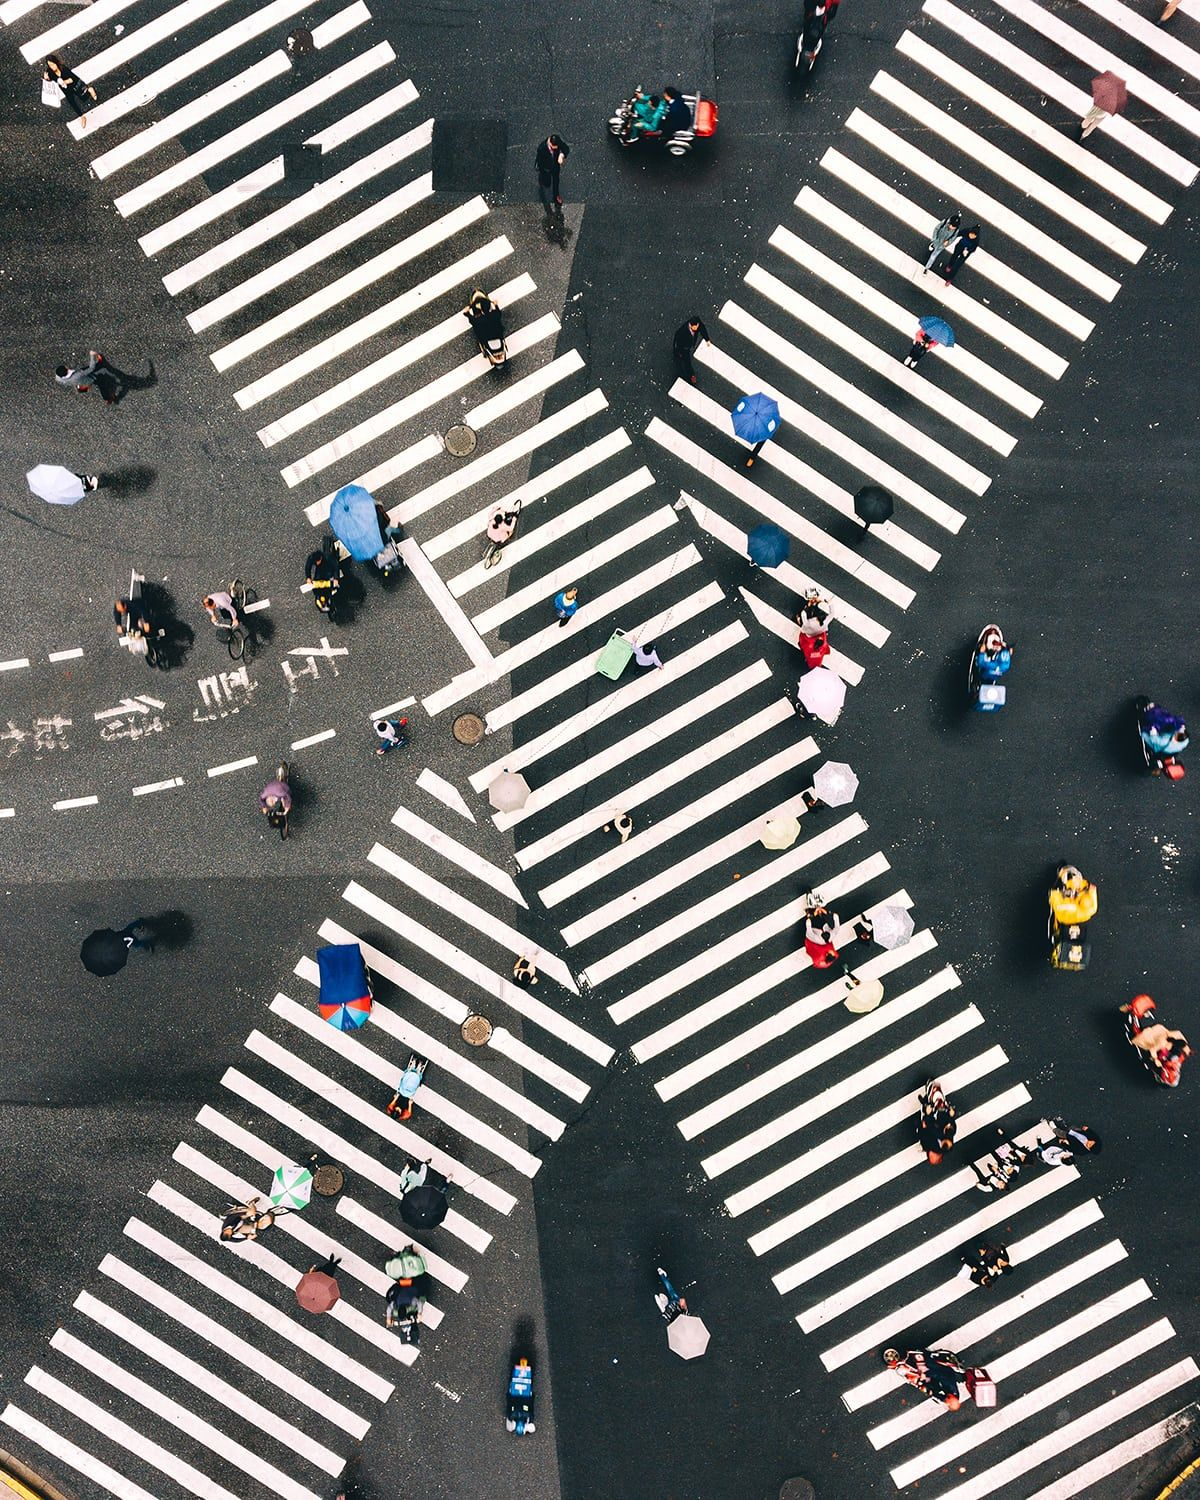 The new view from above: drone photography captures city symmetry – in pictures